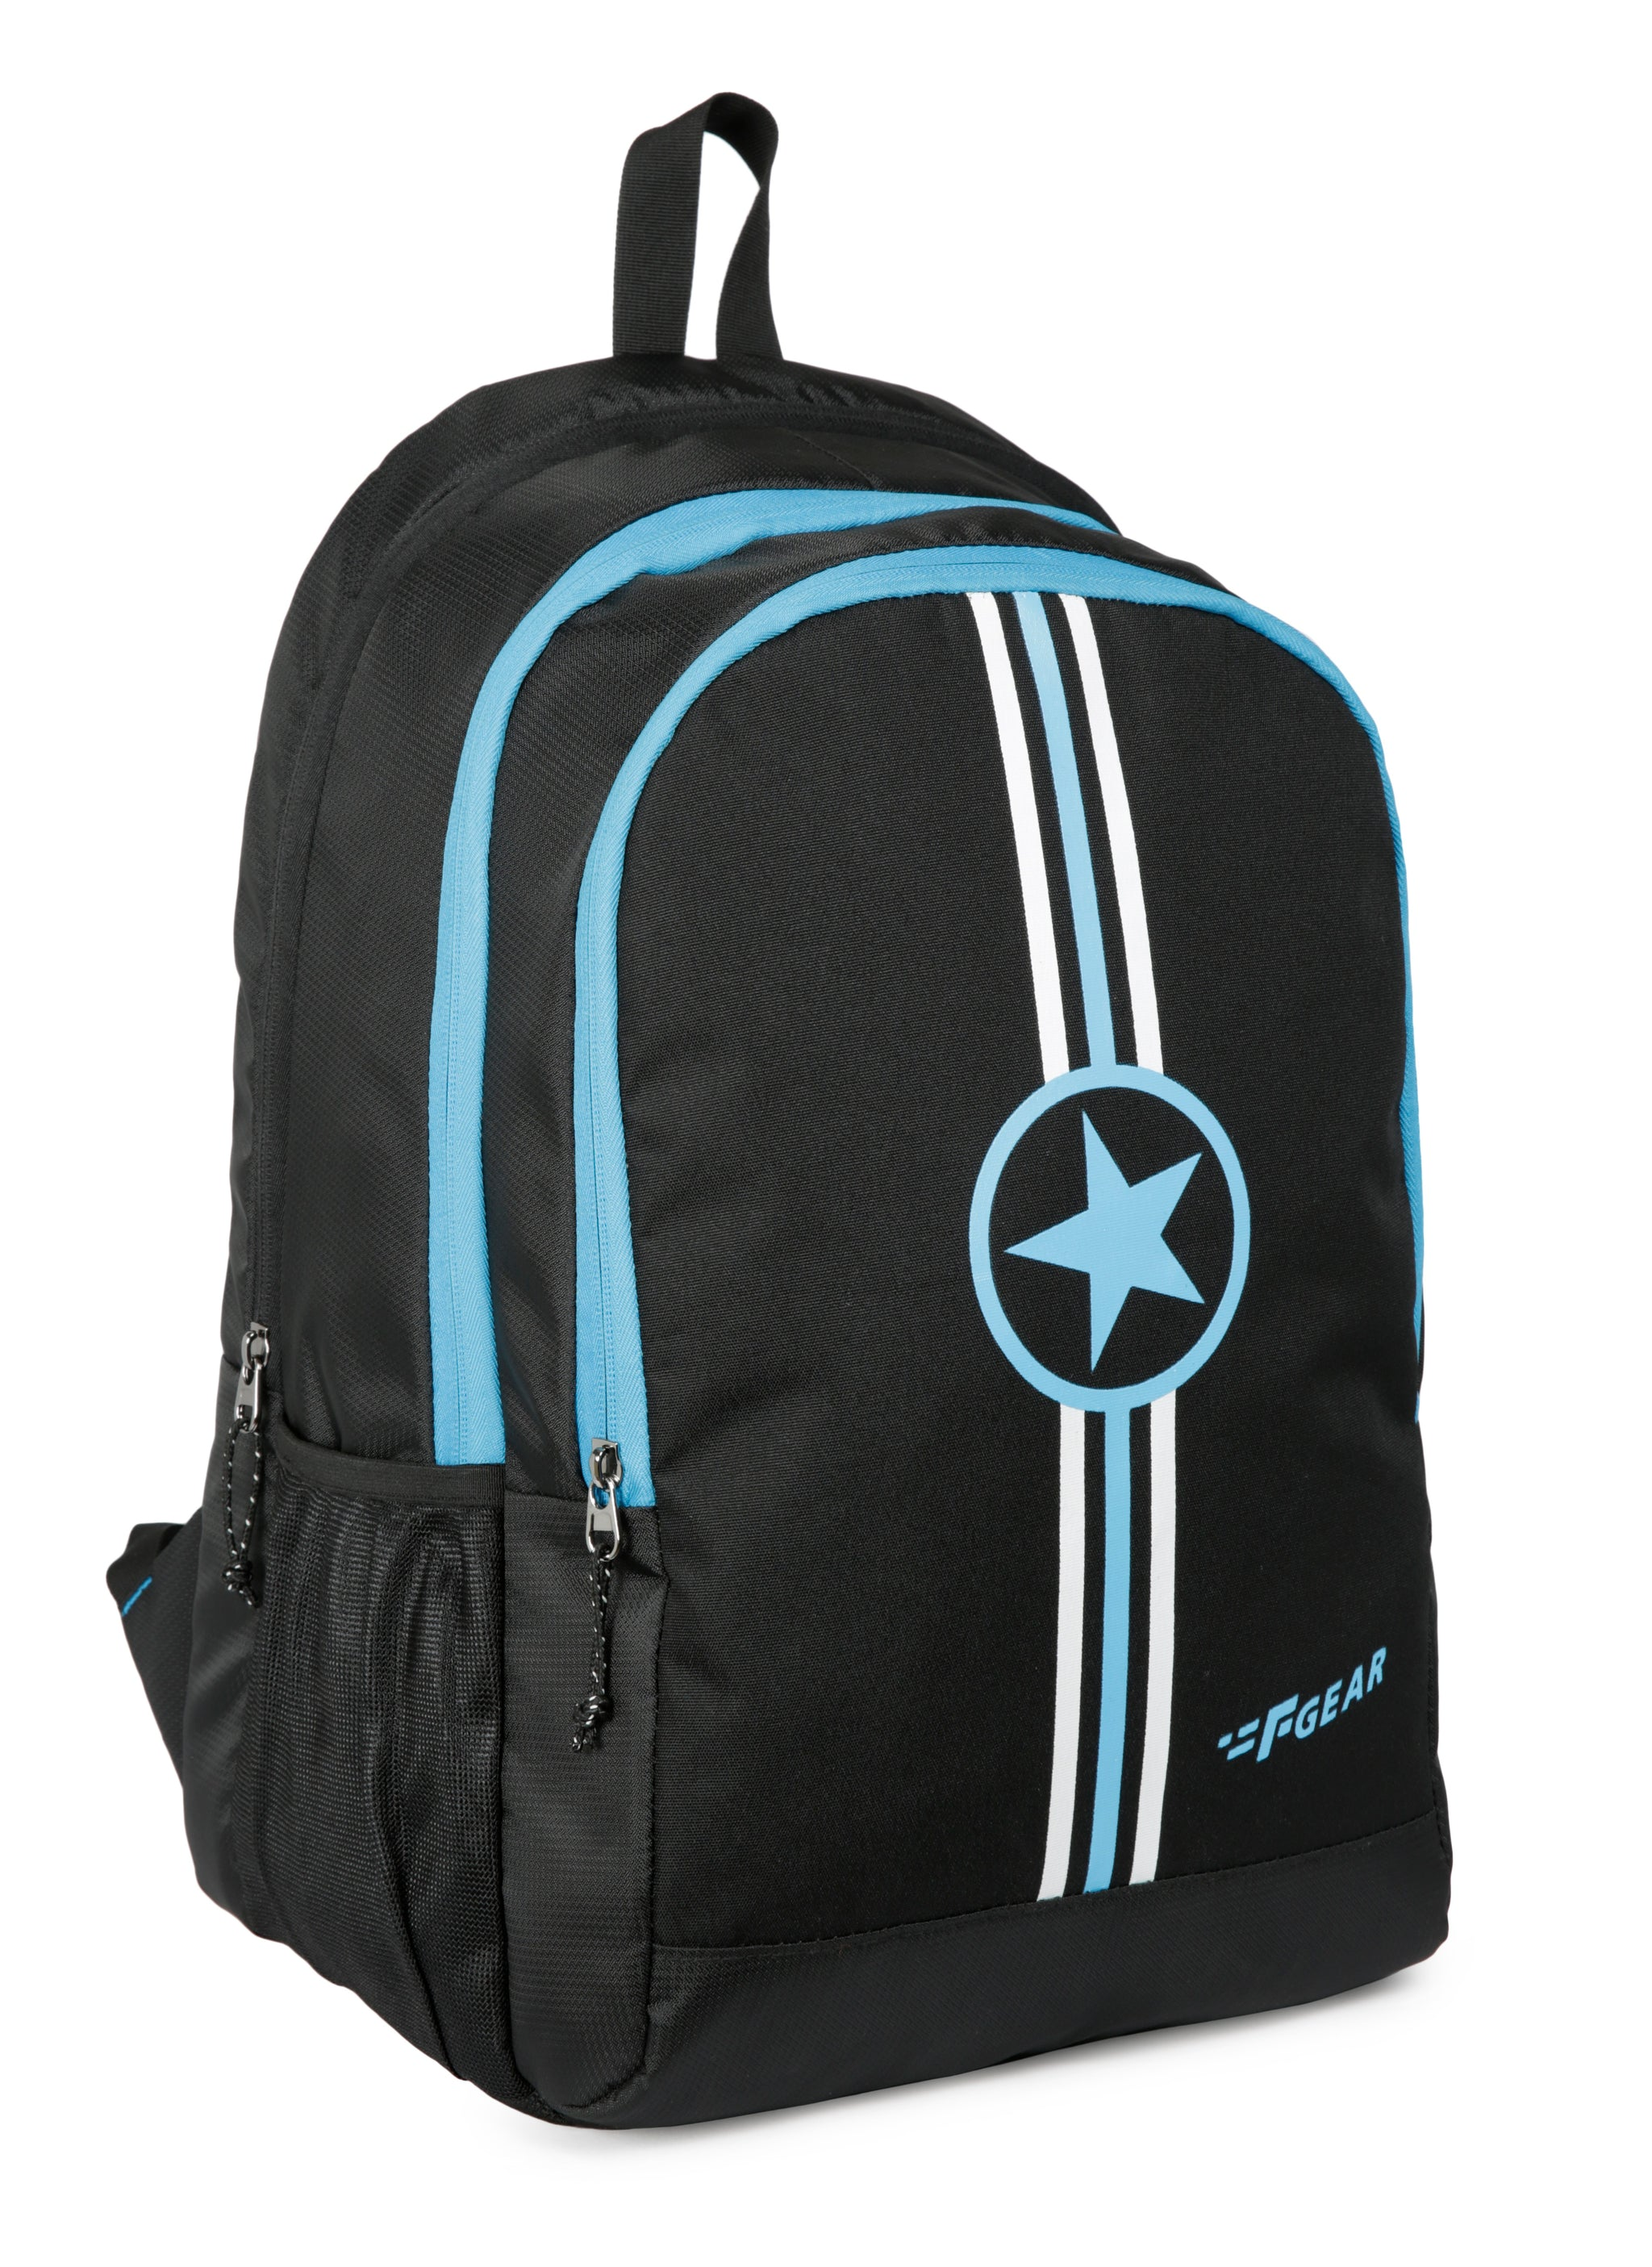 F Gear Star Doby 33 Ltrs Black, Blue Casual Backpack (3229)